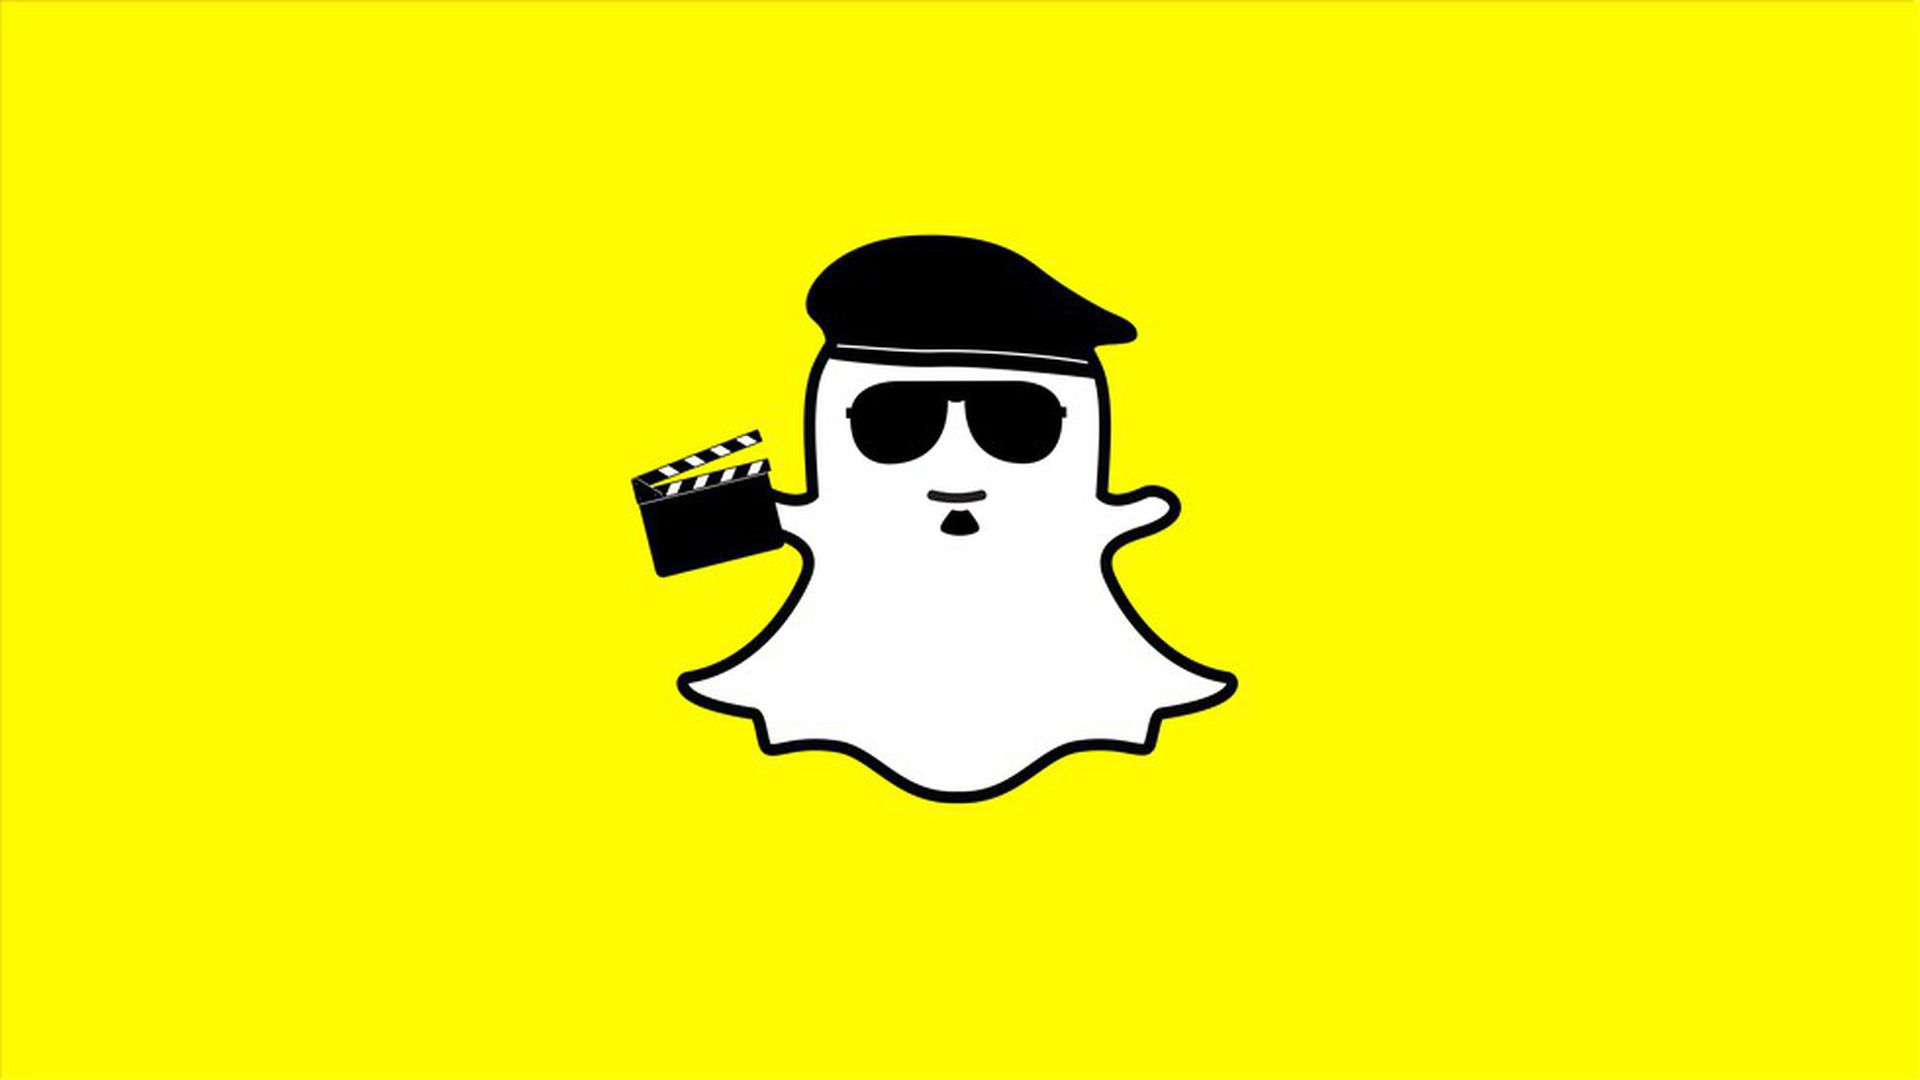 cc74978ff11 CNN returns to Snapchat as part of Snap s new content push - Axios